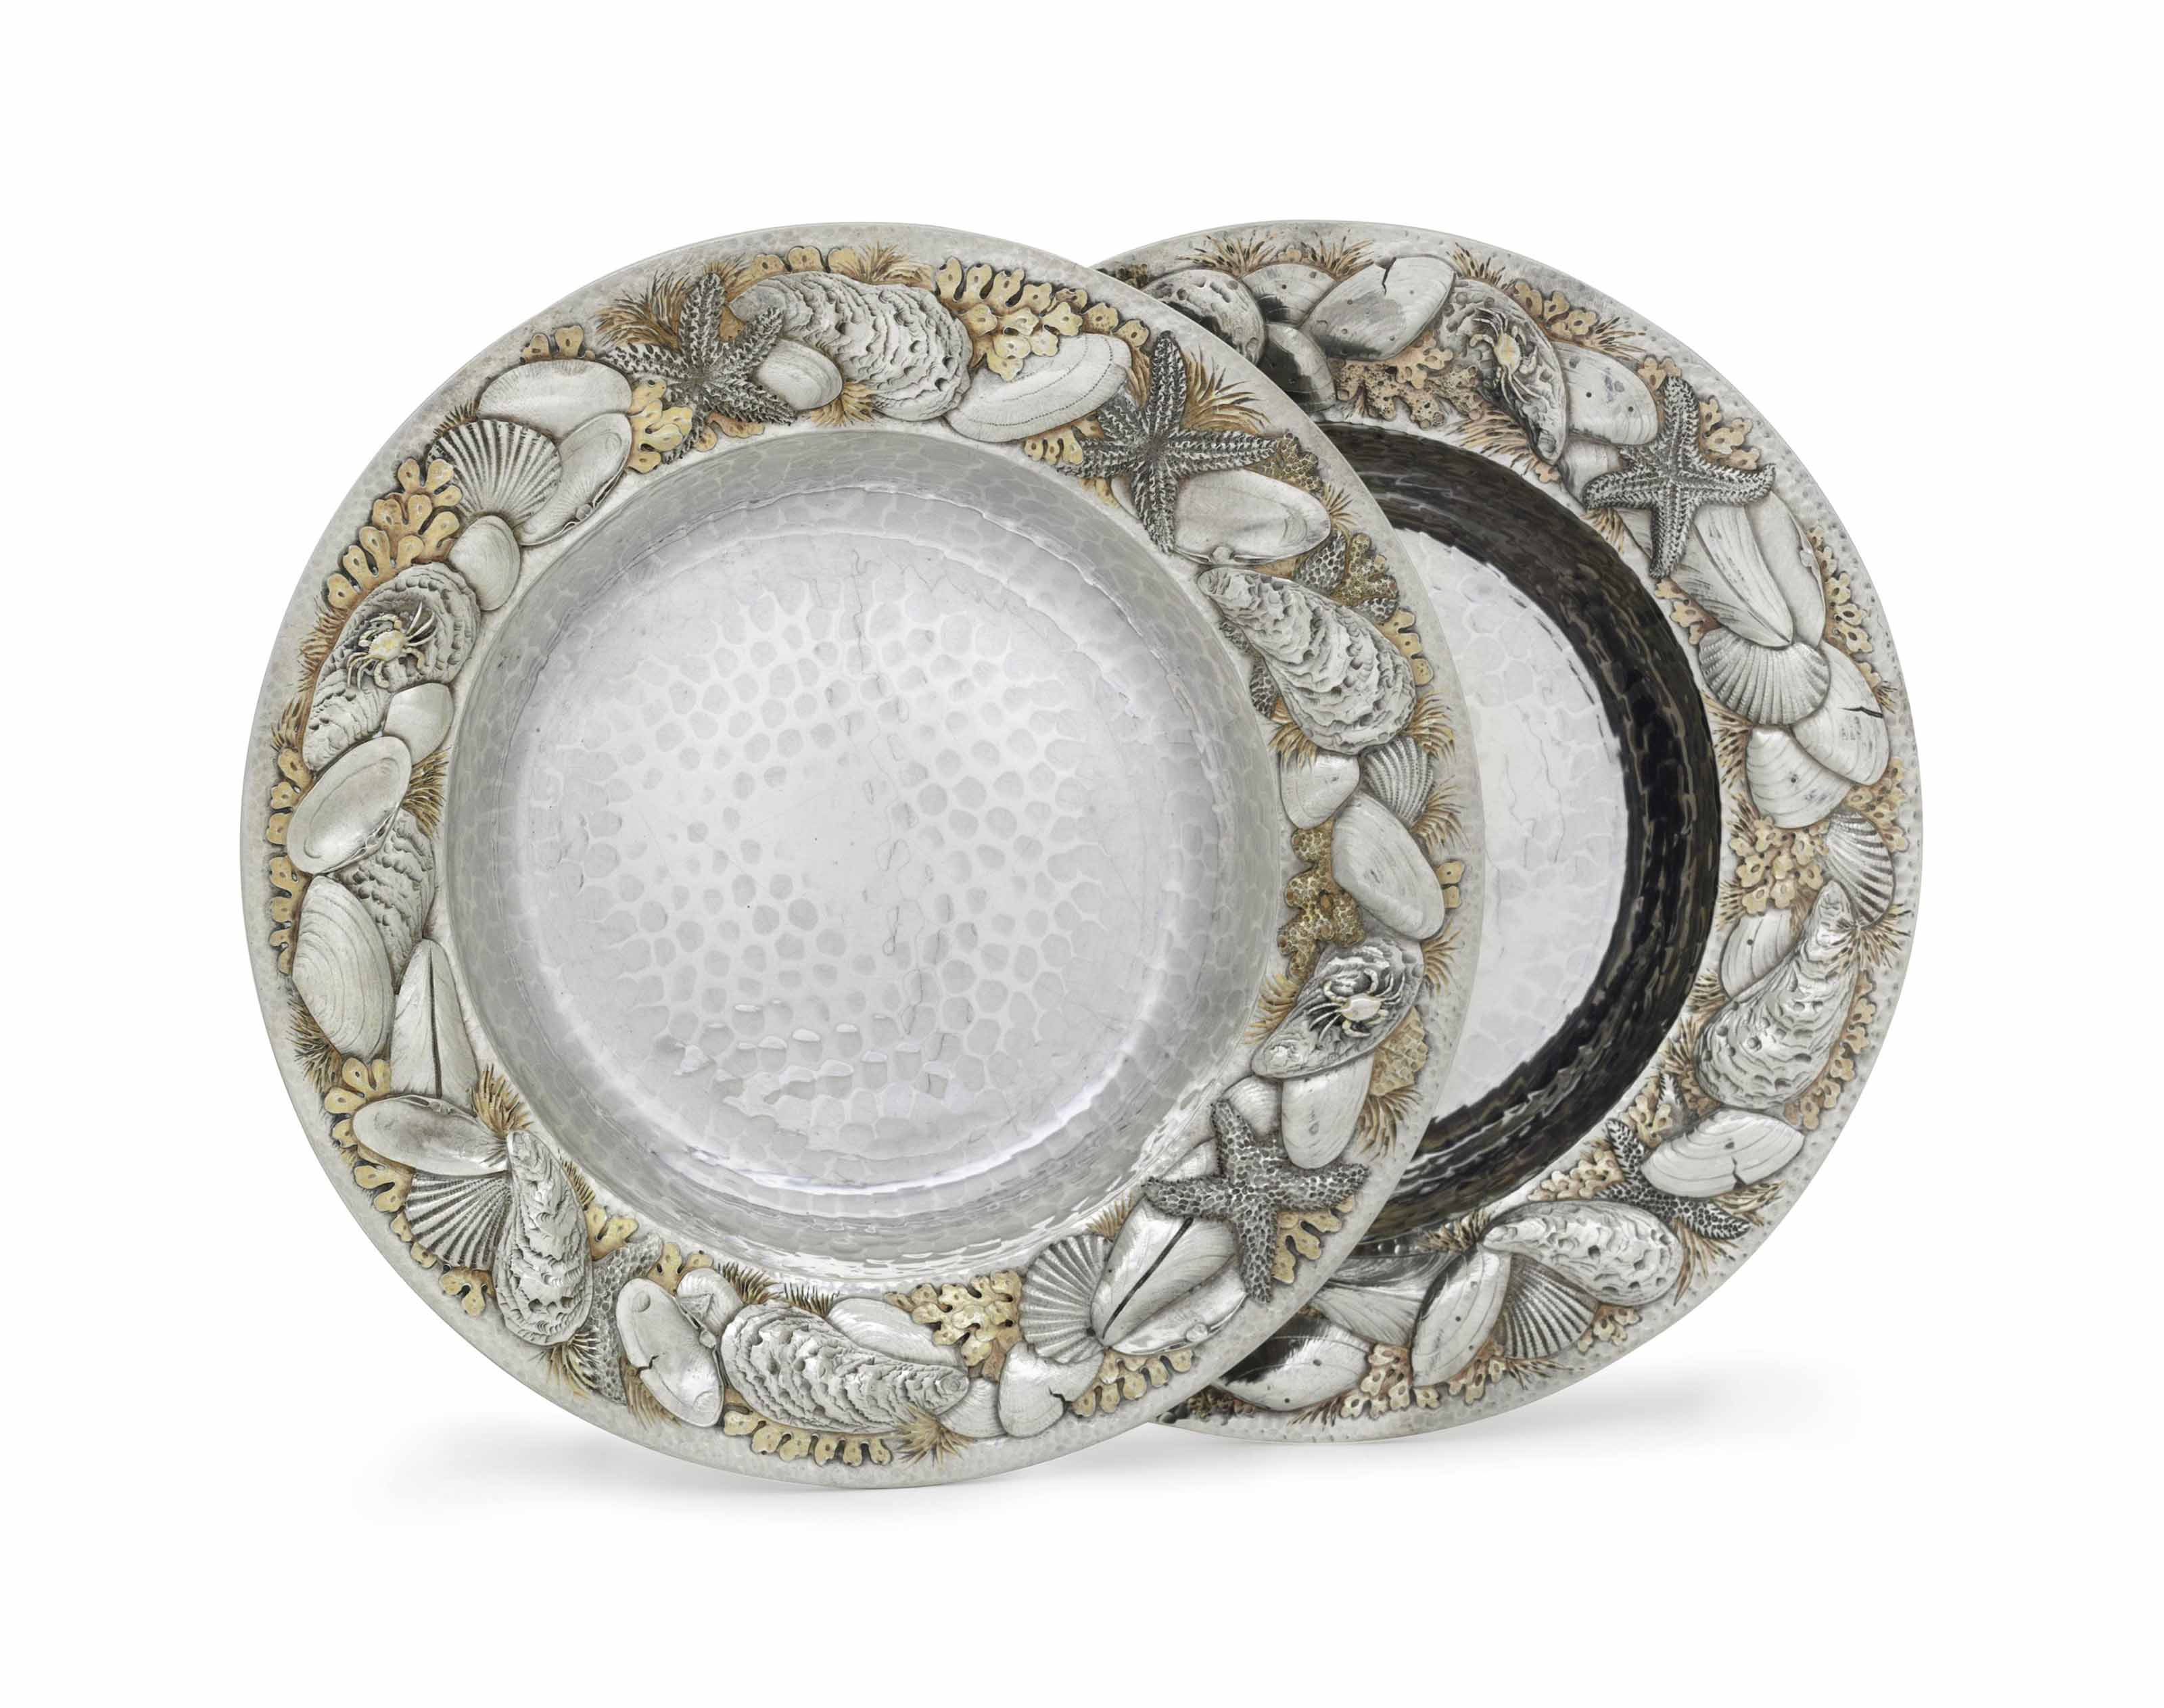 A PAIR OF PARCEL-GILT SILVER DISHES